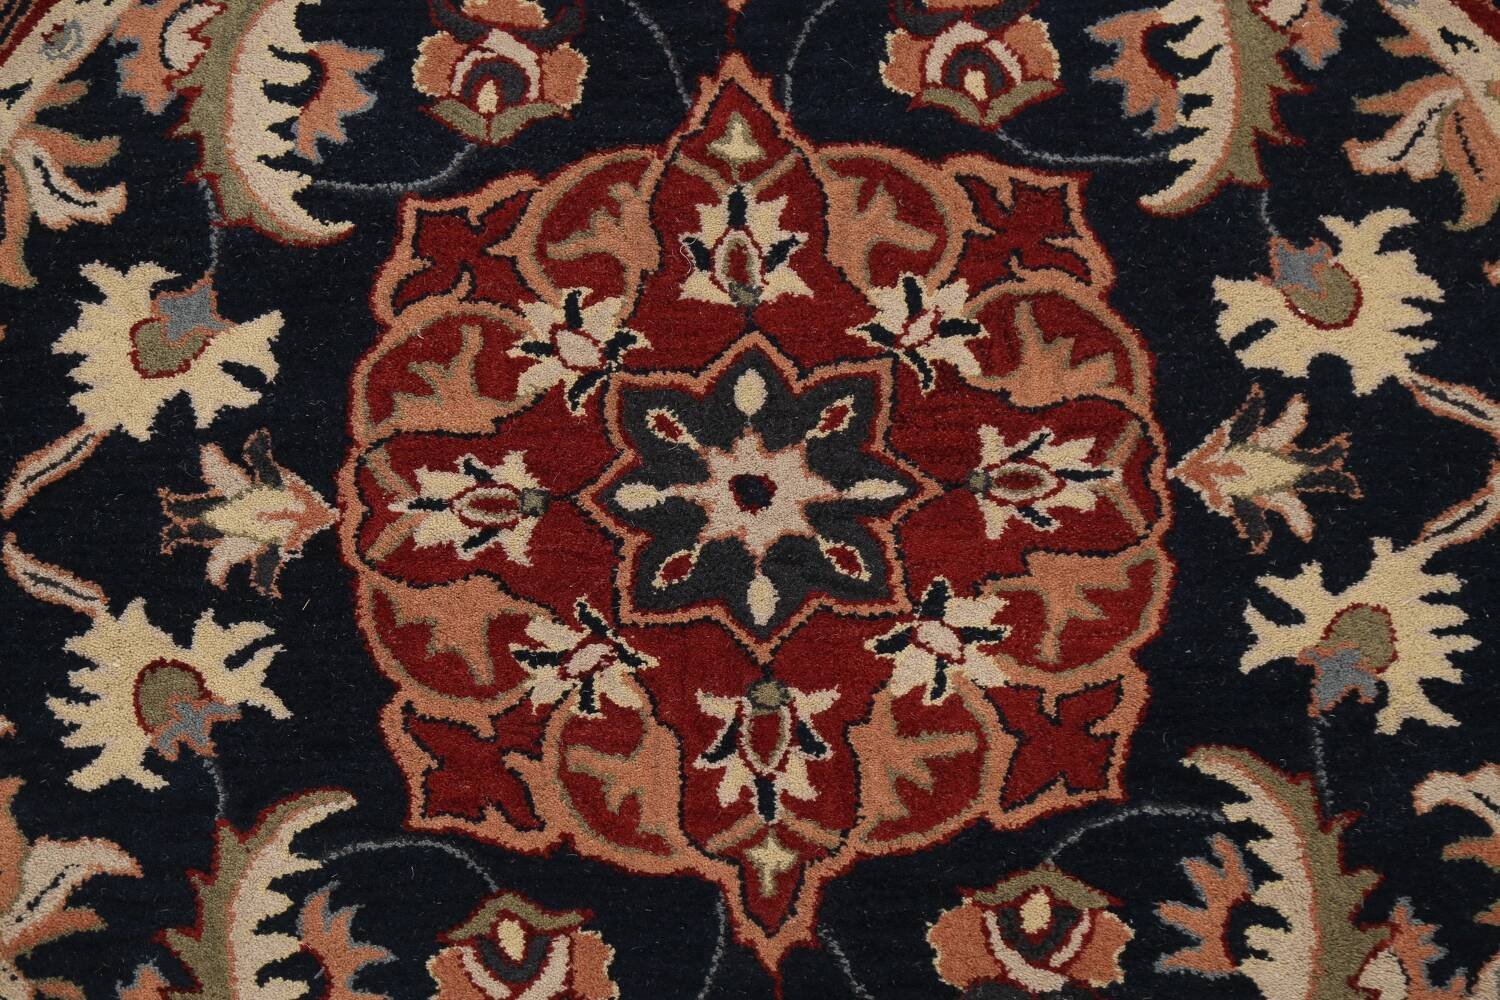 Floral Round Rug 6x6 image 4